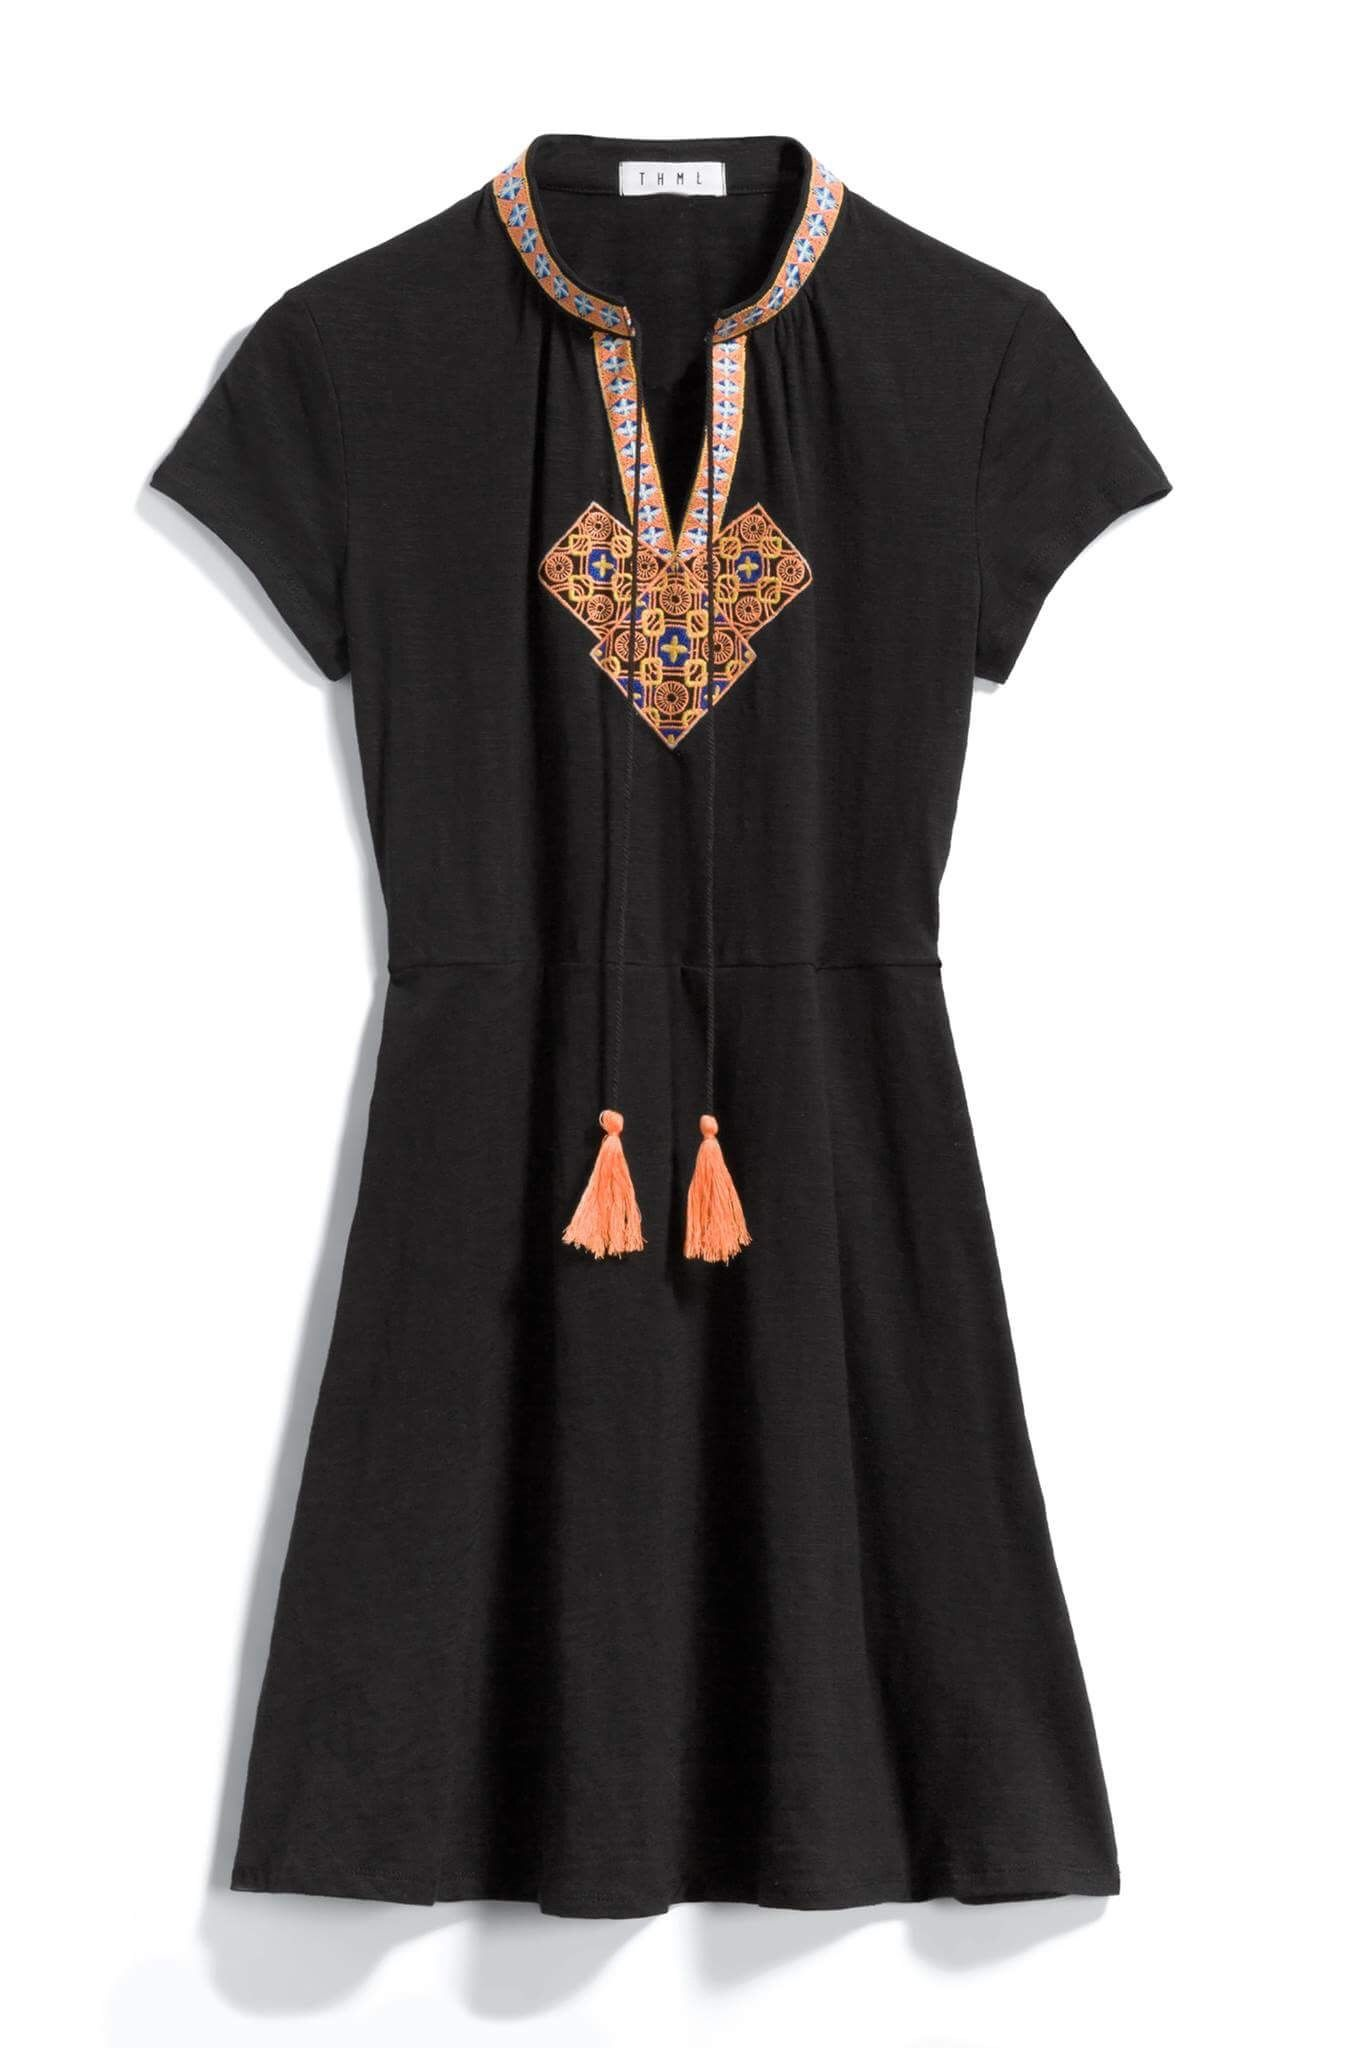 Thml black dress with orange print tie detail stitch fix style